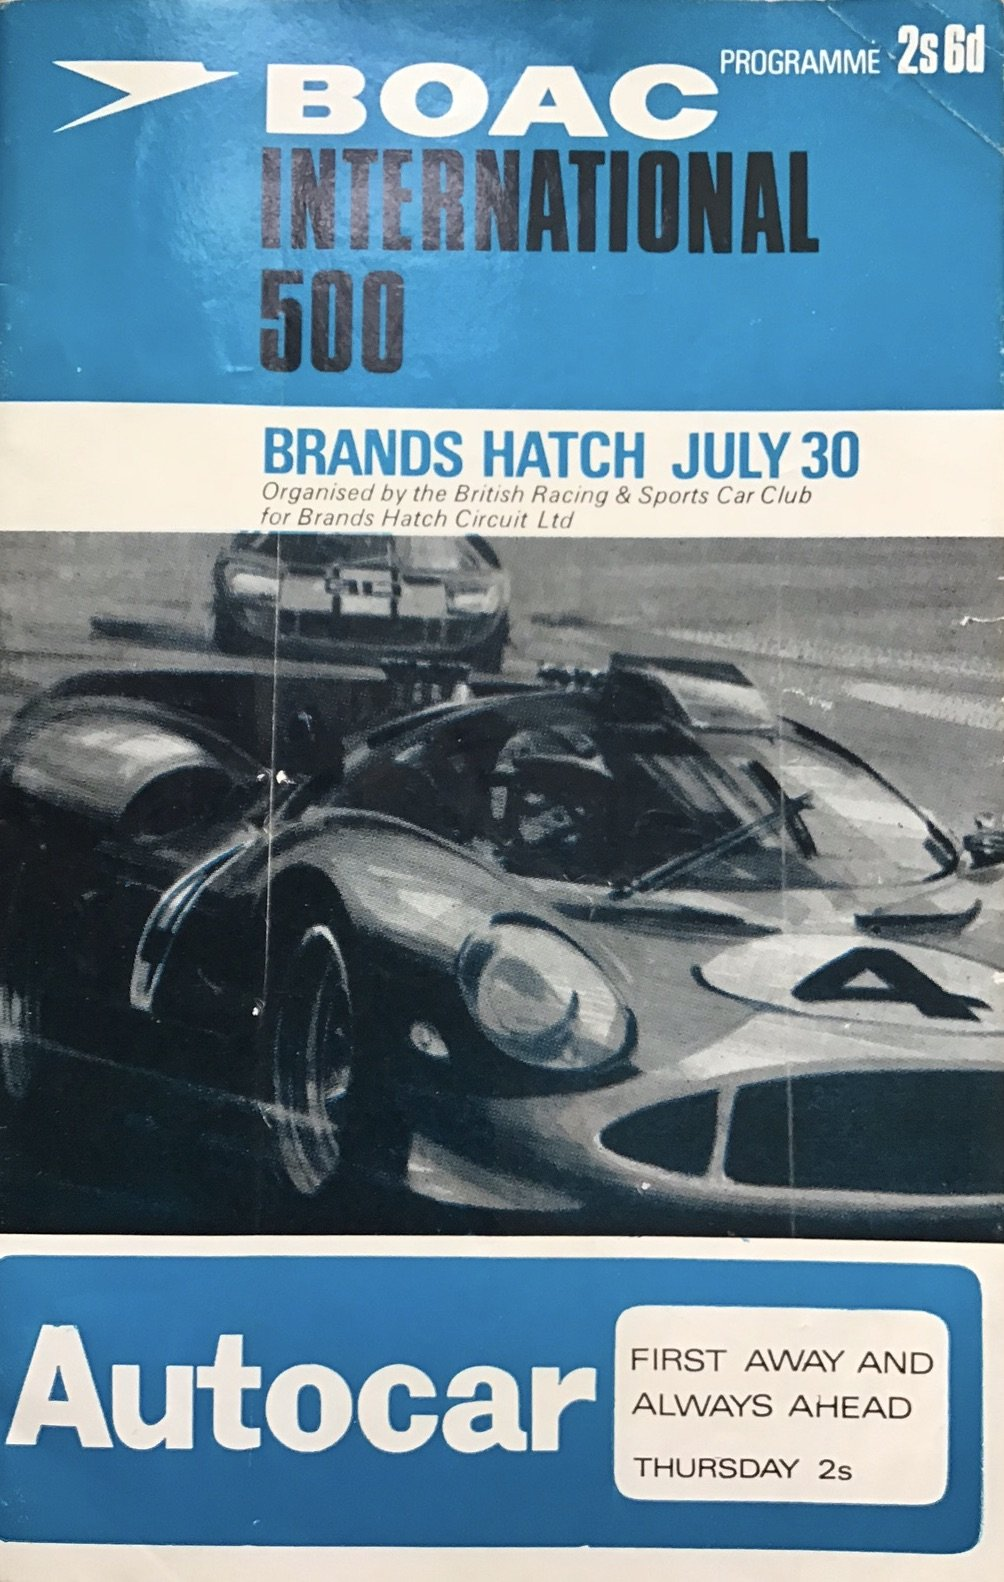 1967 Lotus 47GT 04/78 - John Miles /Jackie Oliver WORKS CAR For Sale (picture 6 of 6)